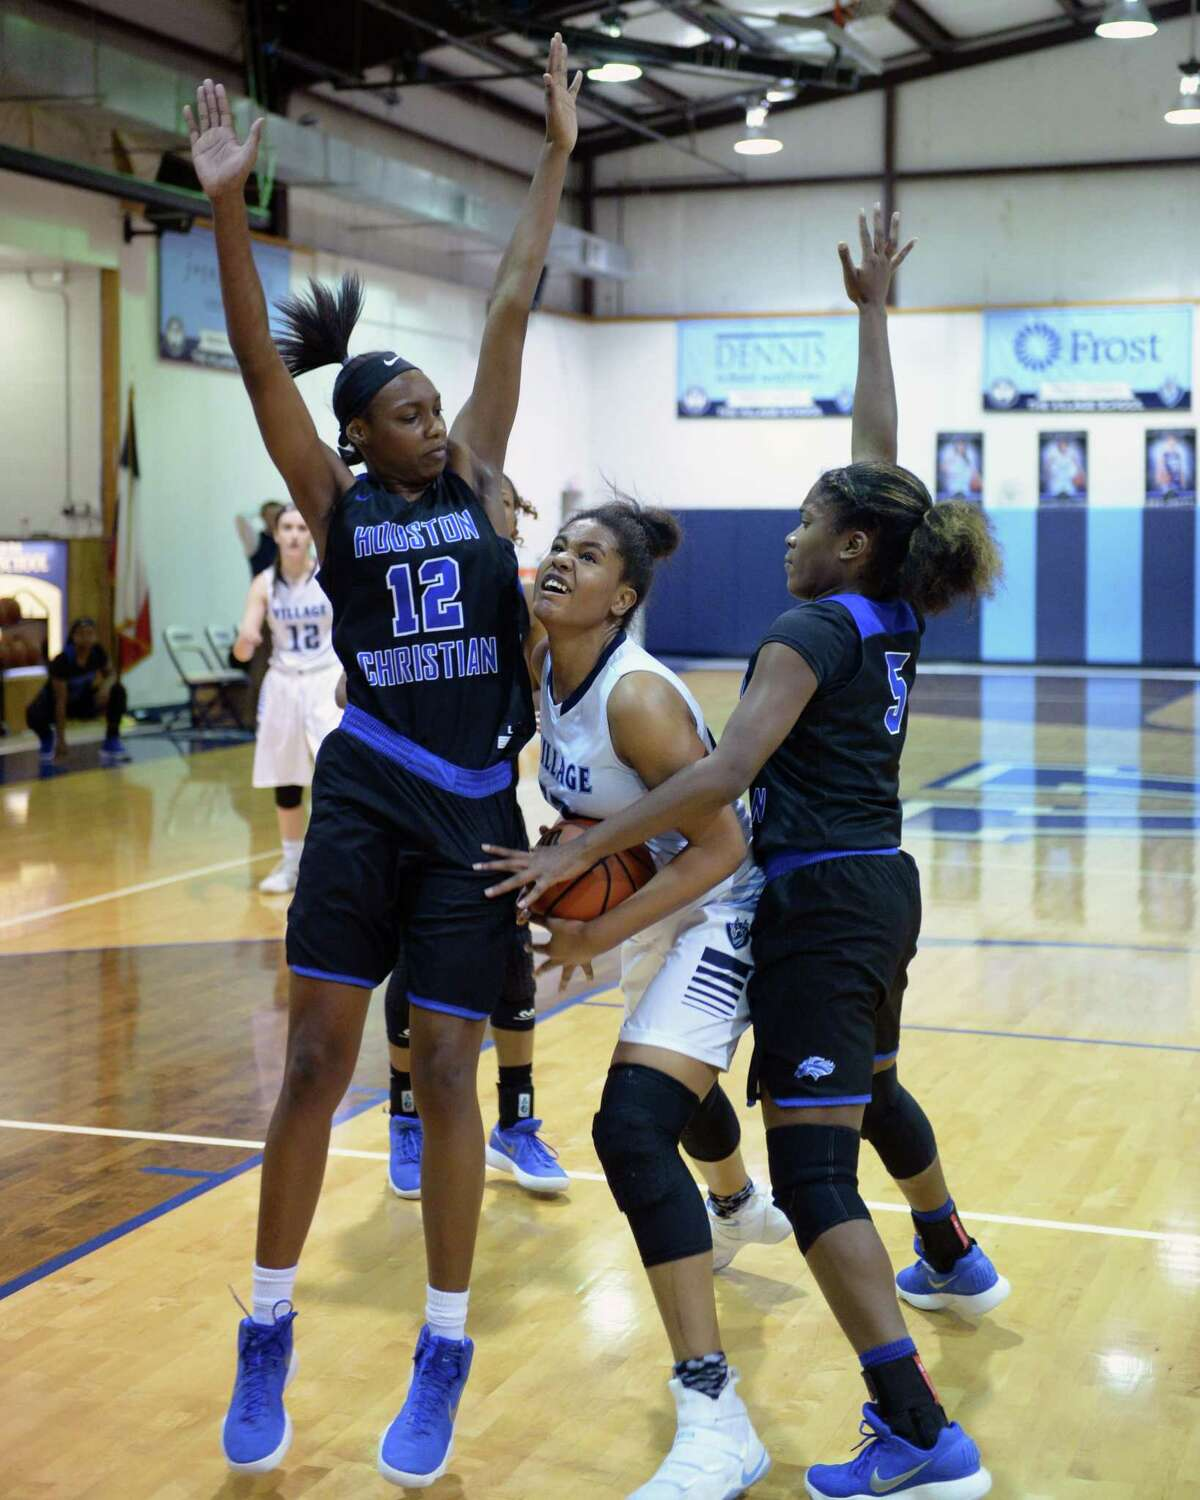 Jada Malone (23) of Village attempts to drive past Autumn Nicholas (5) and Amani Bartlett (12) of Houston Christian during the first quarter of a varsity girls basketball game between The Village Vikings and the Houston Christian Mustangs on Friday January 5, 2018 at The Village School, Houston, TX.